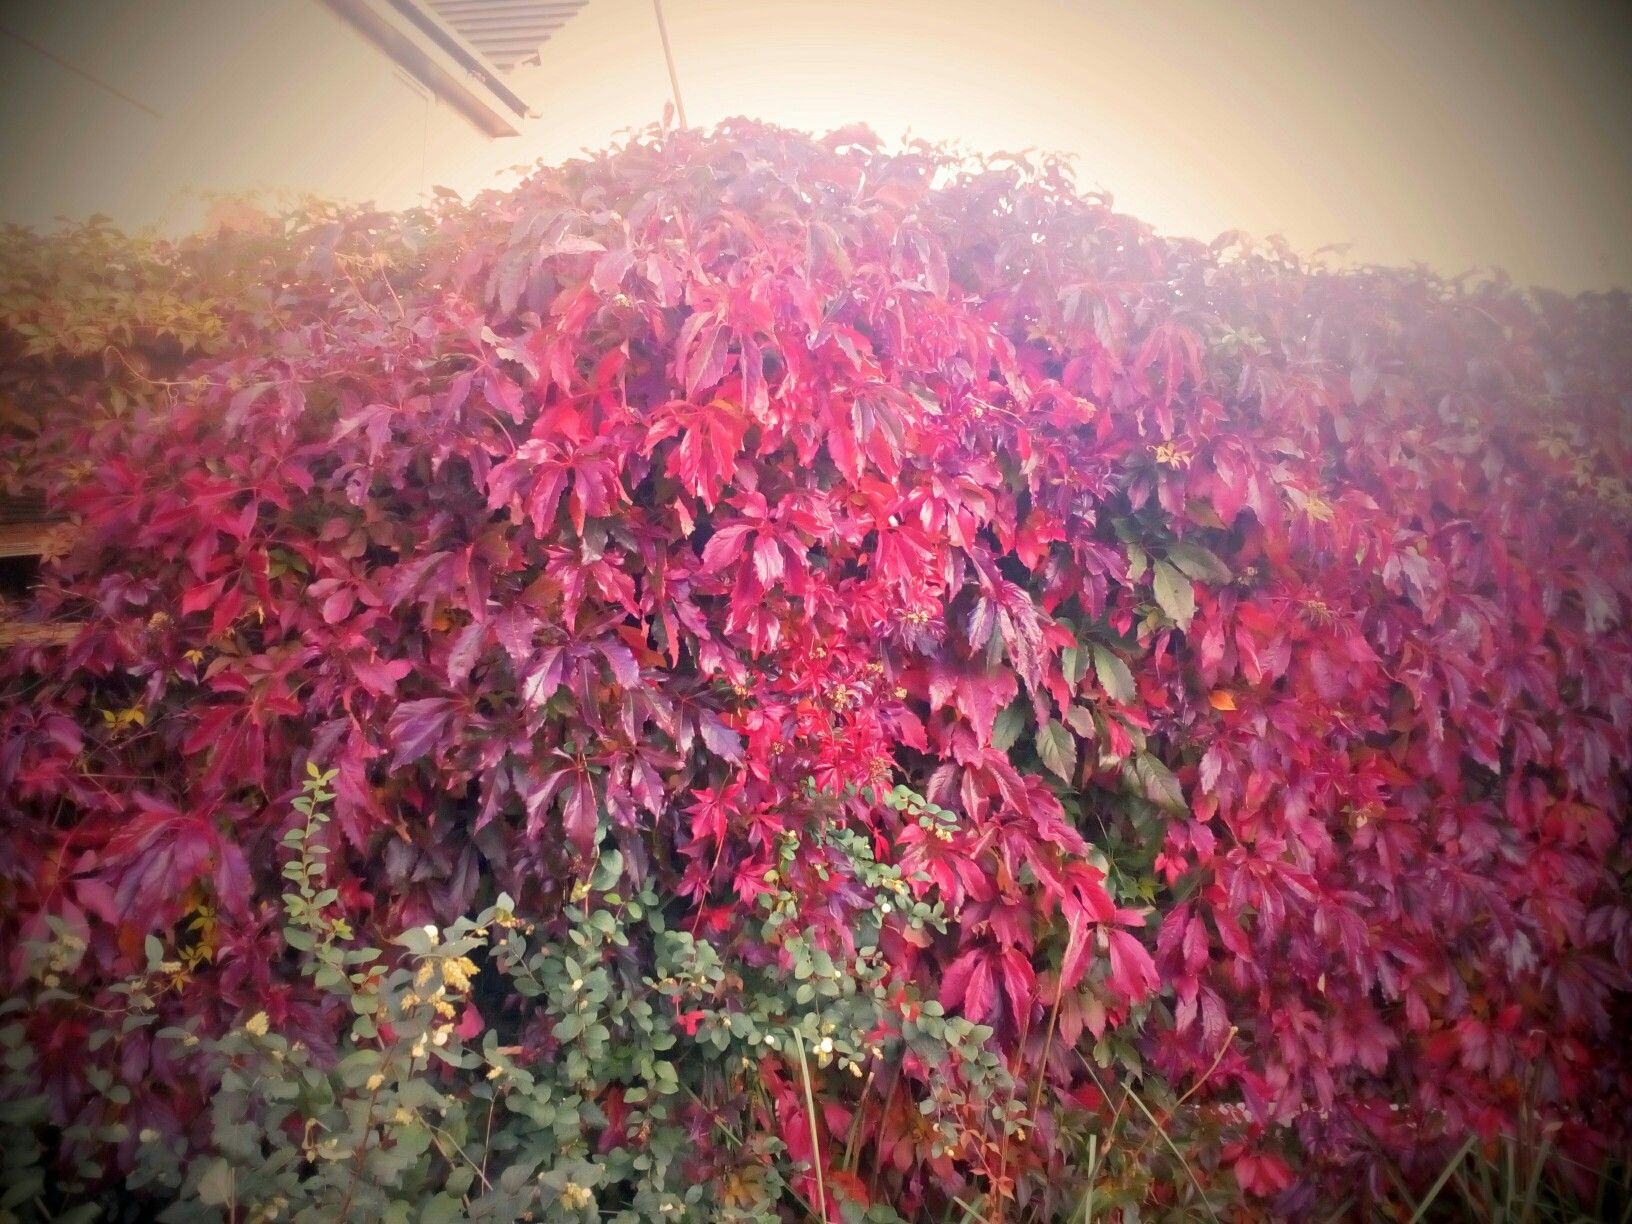 Best part of the year,Virginia Creeper in full glory